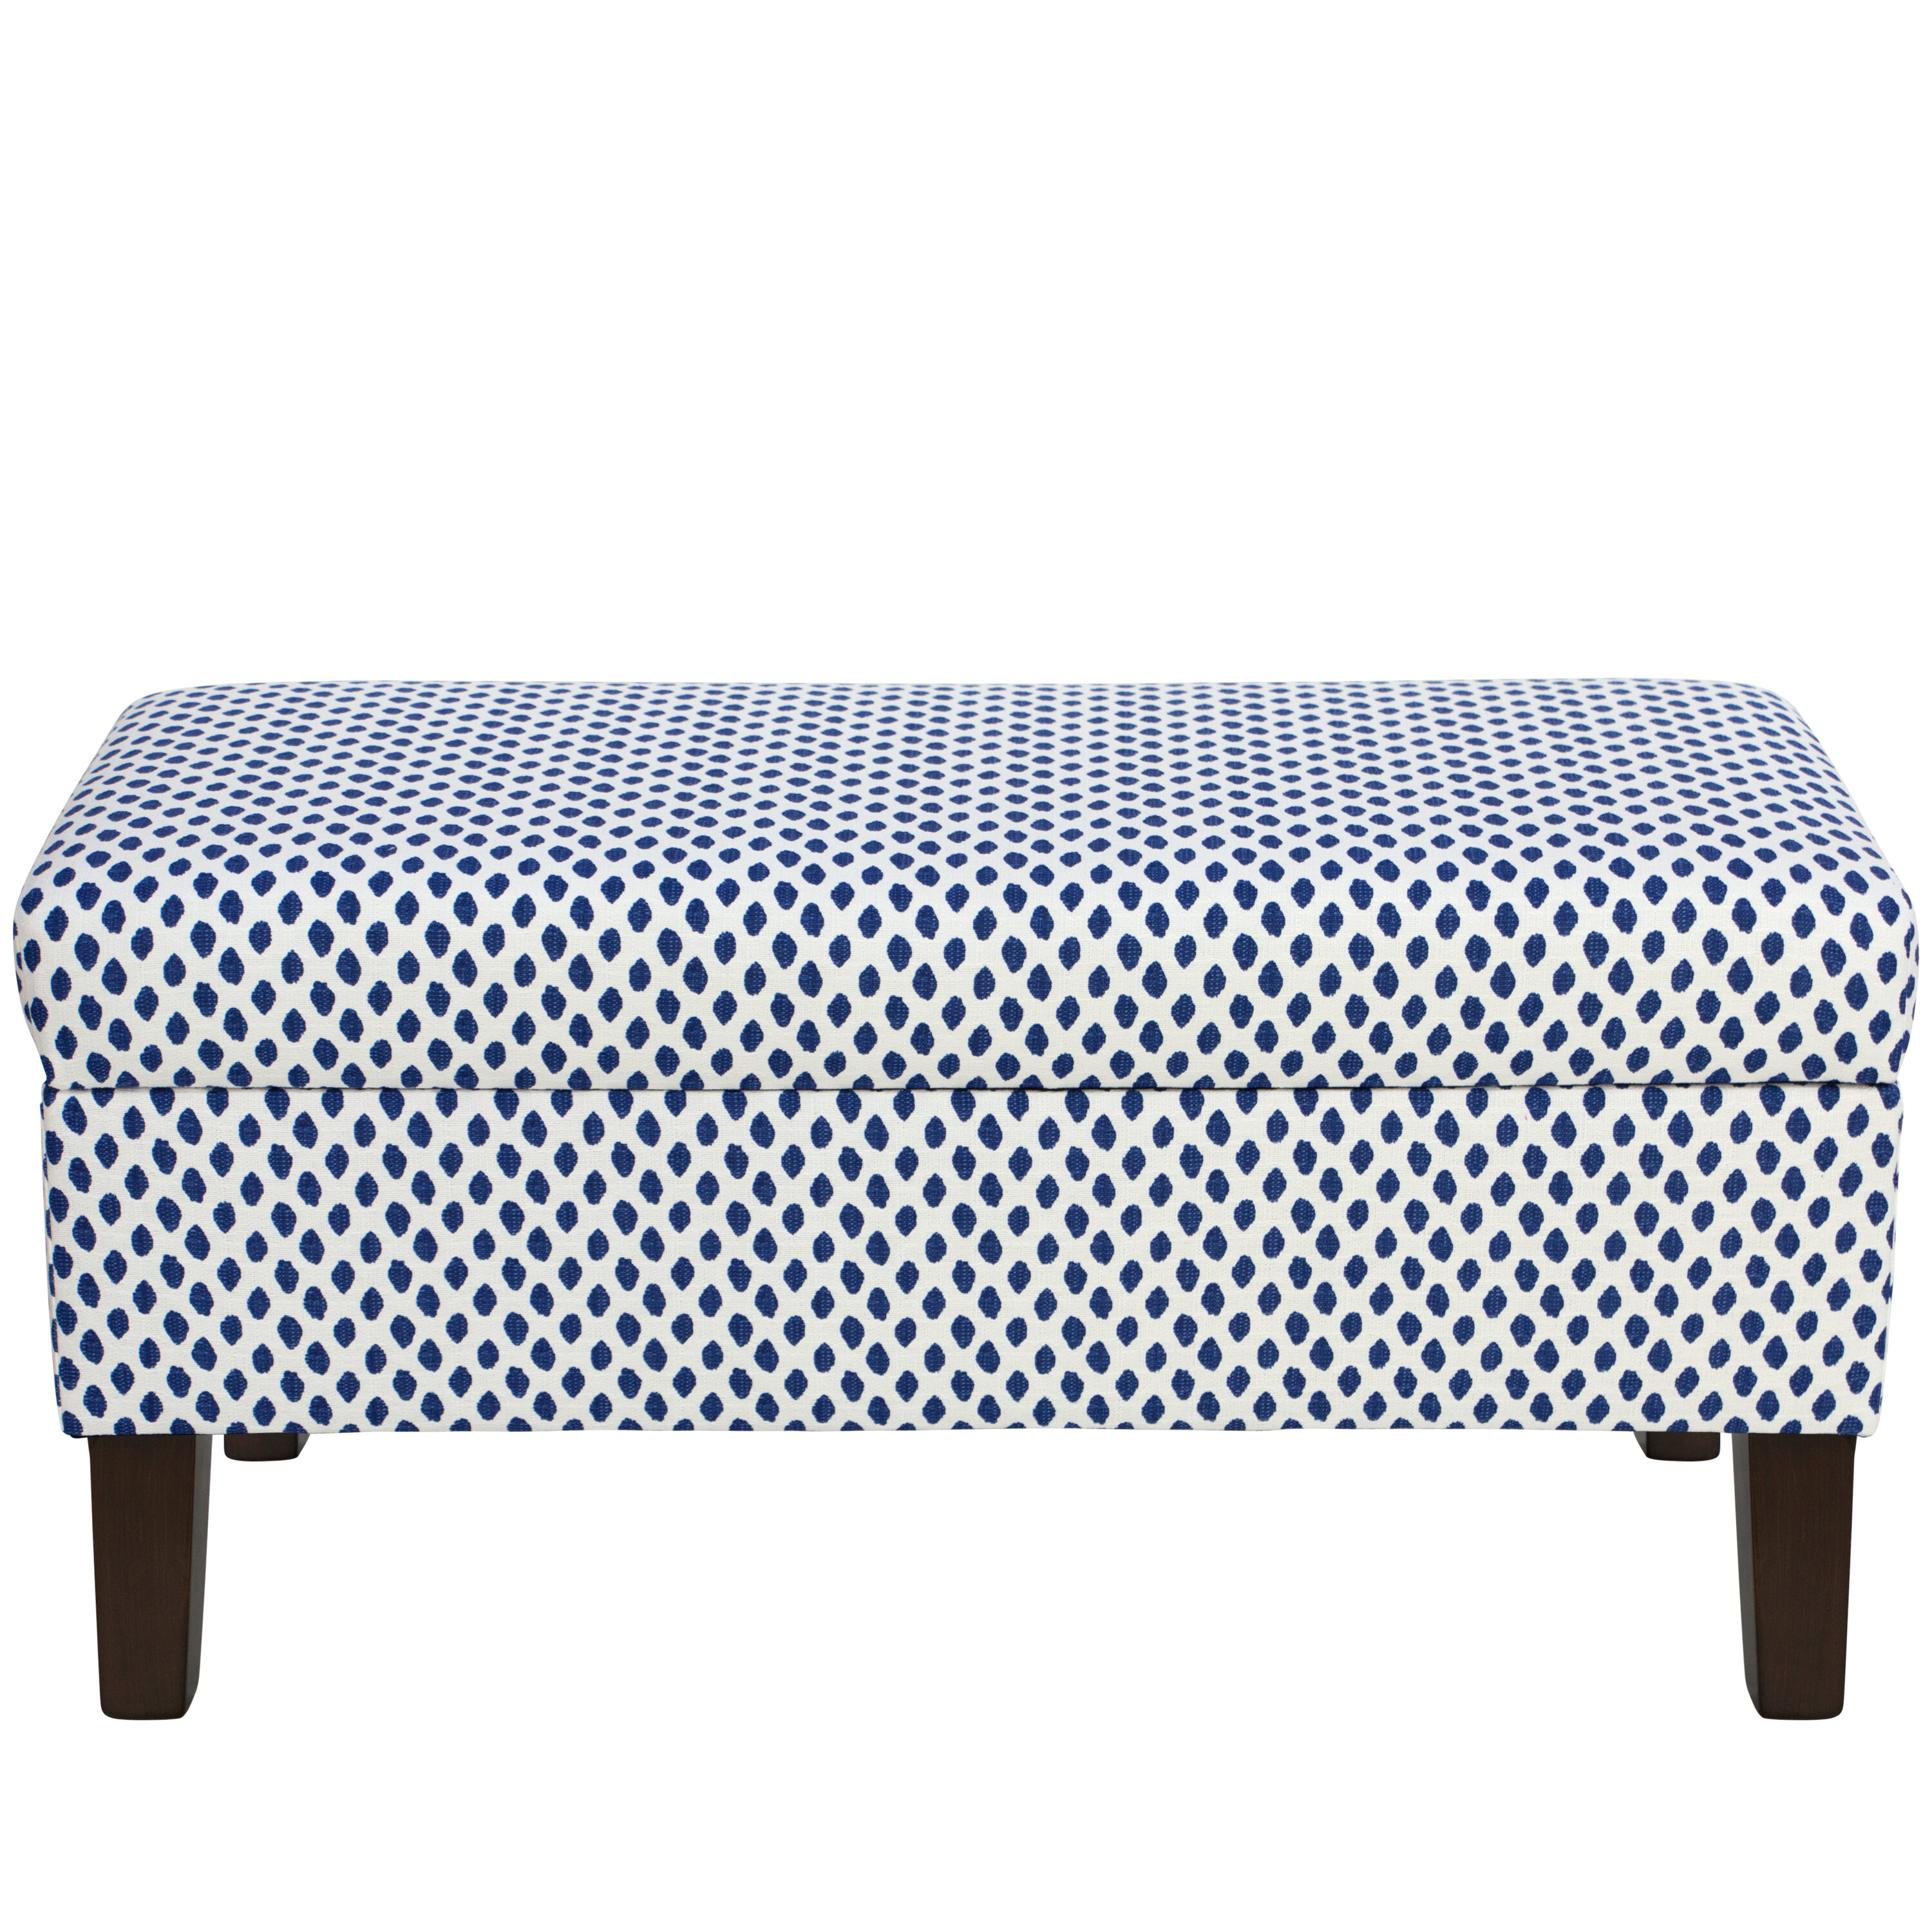 Ivy Bronx Adelyn Cotton Upholstered Storage Bench | Wayfair